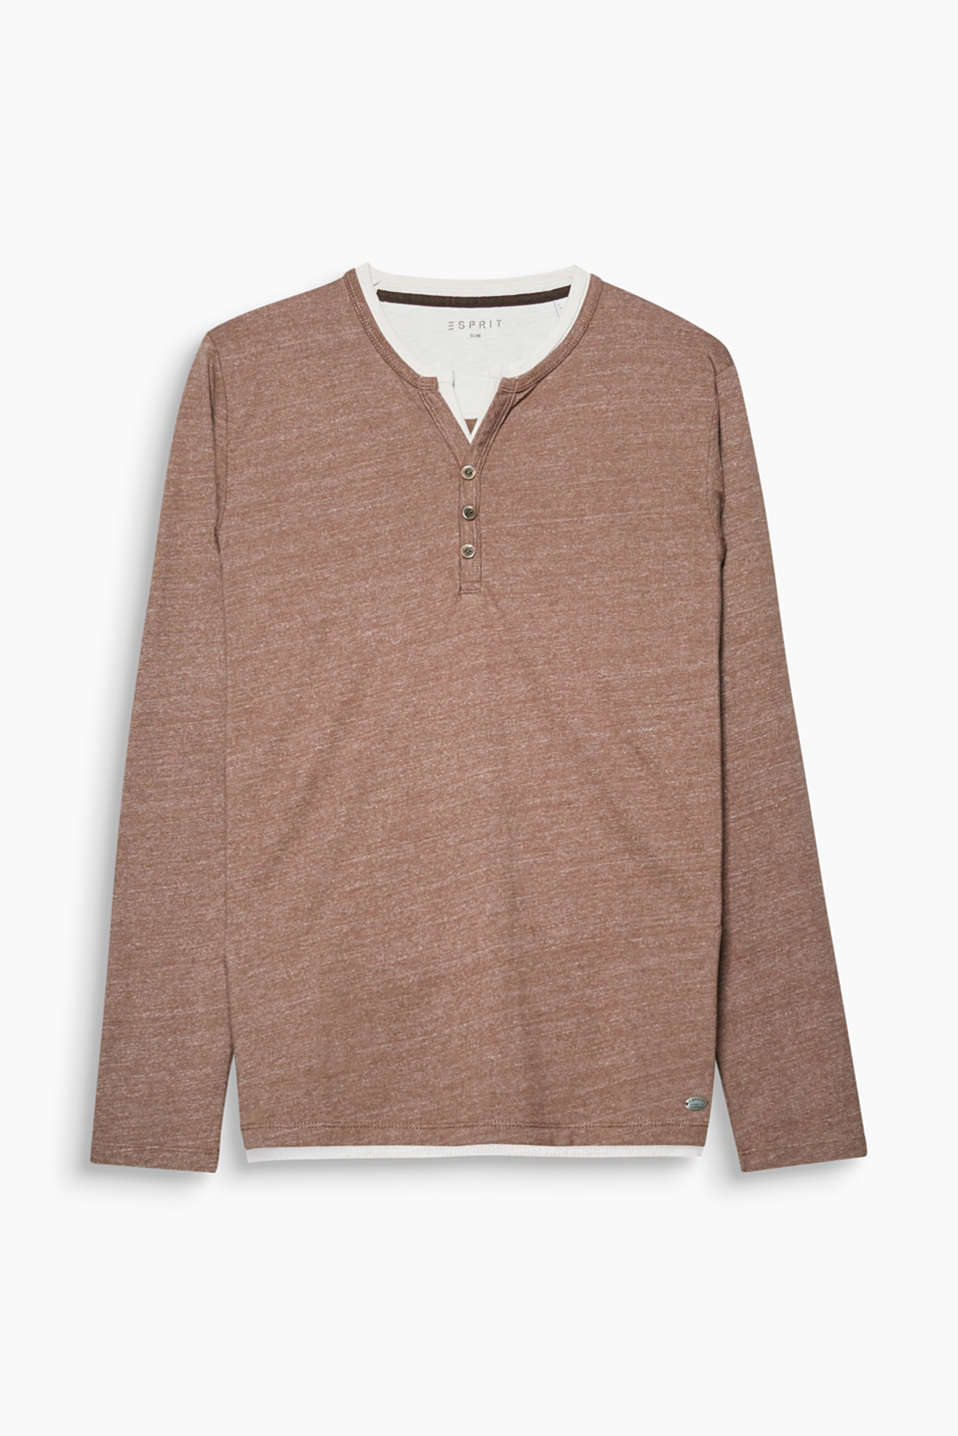 Casual and sporty! This long sleeve top in soft blended cotton is defined by its casual layered effect